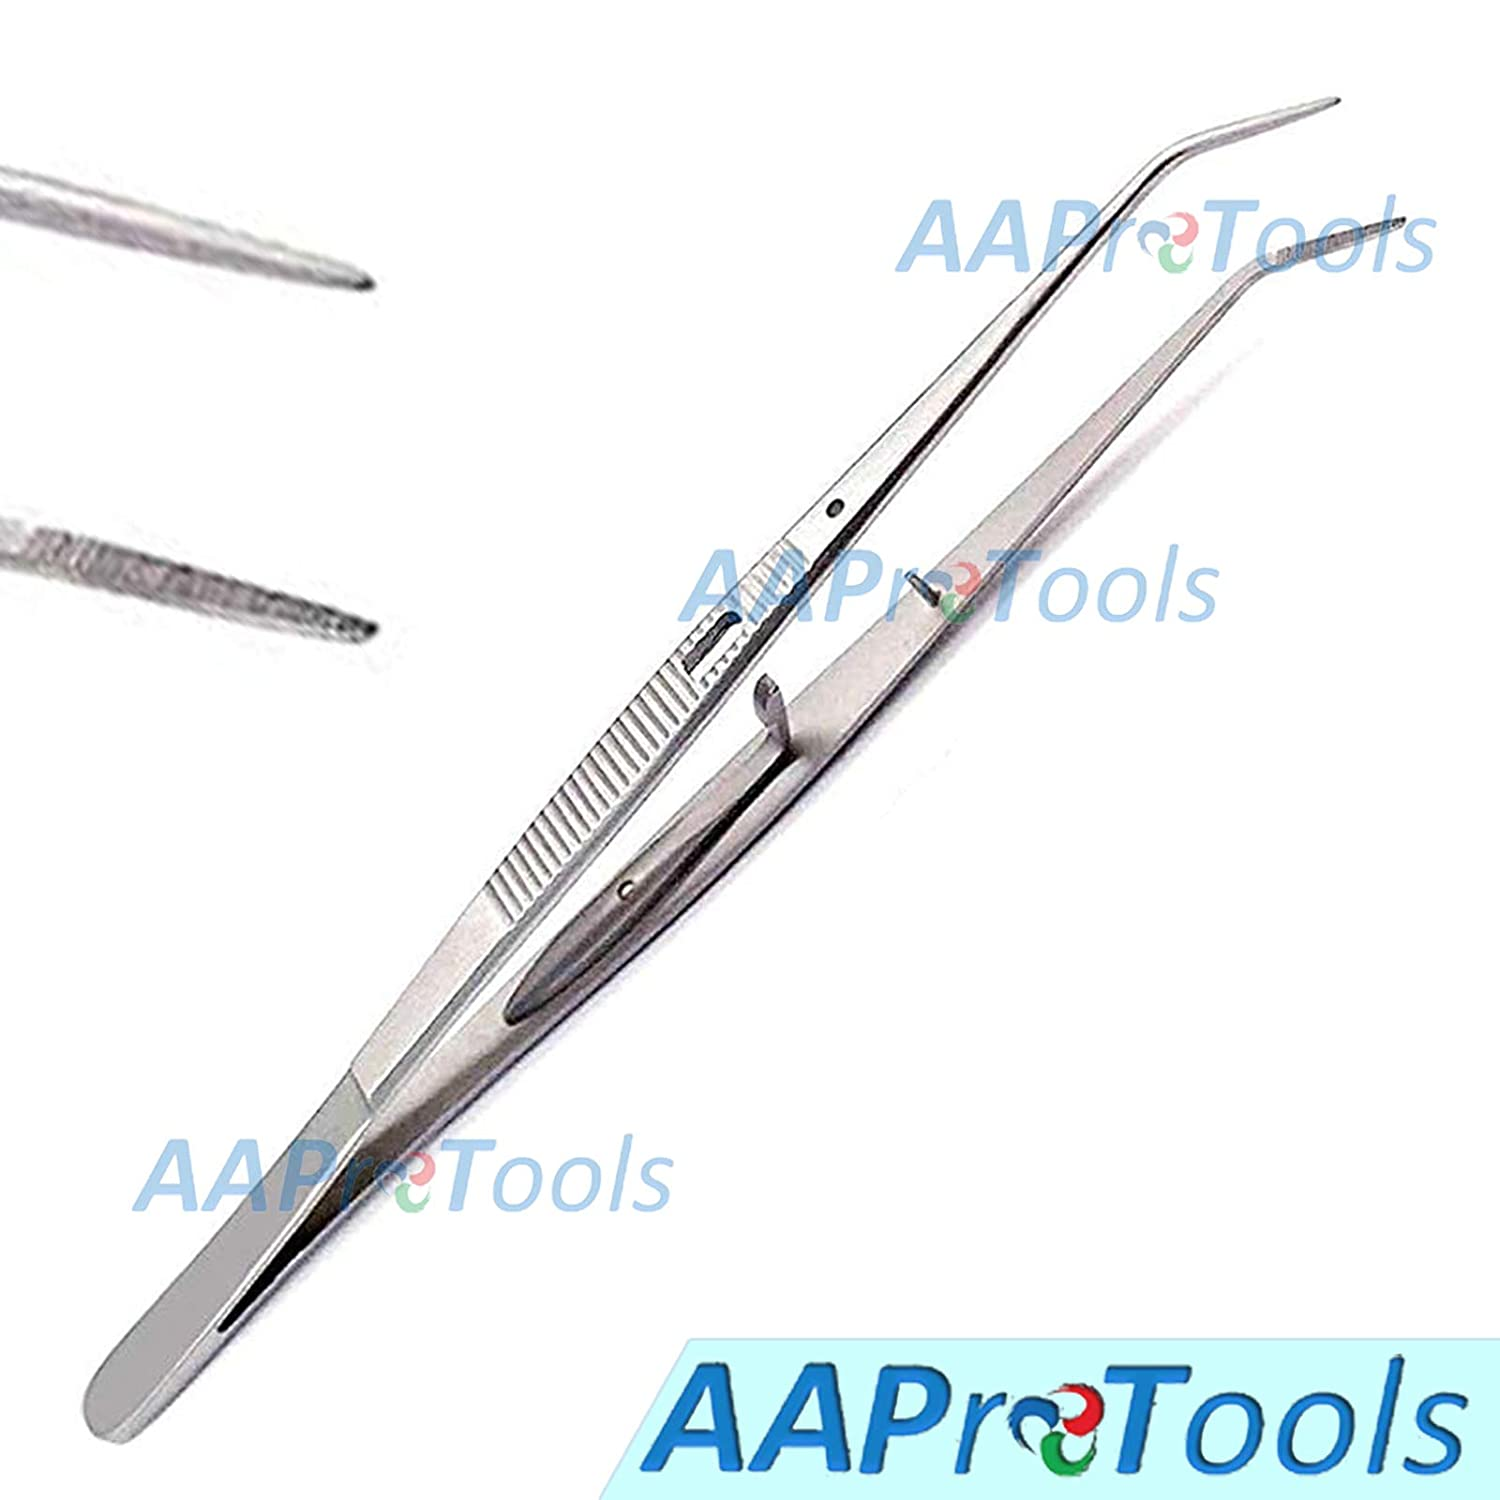 1-5//8 Tip Length 6 Length AAProTools Curved Serrated Tweezers with Lock Stainless Steel